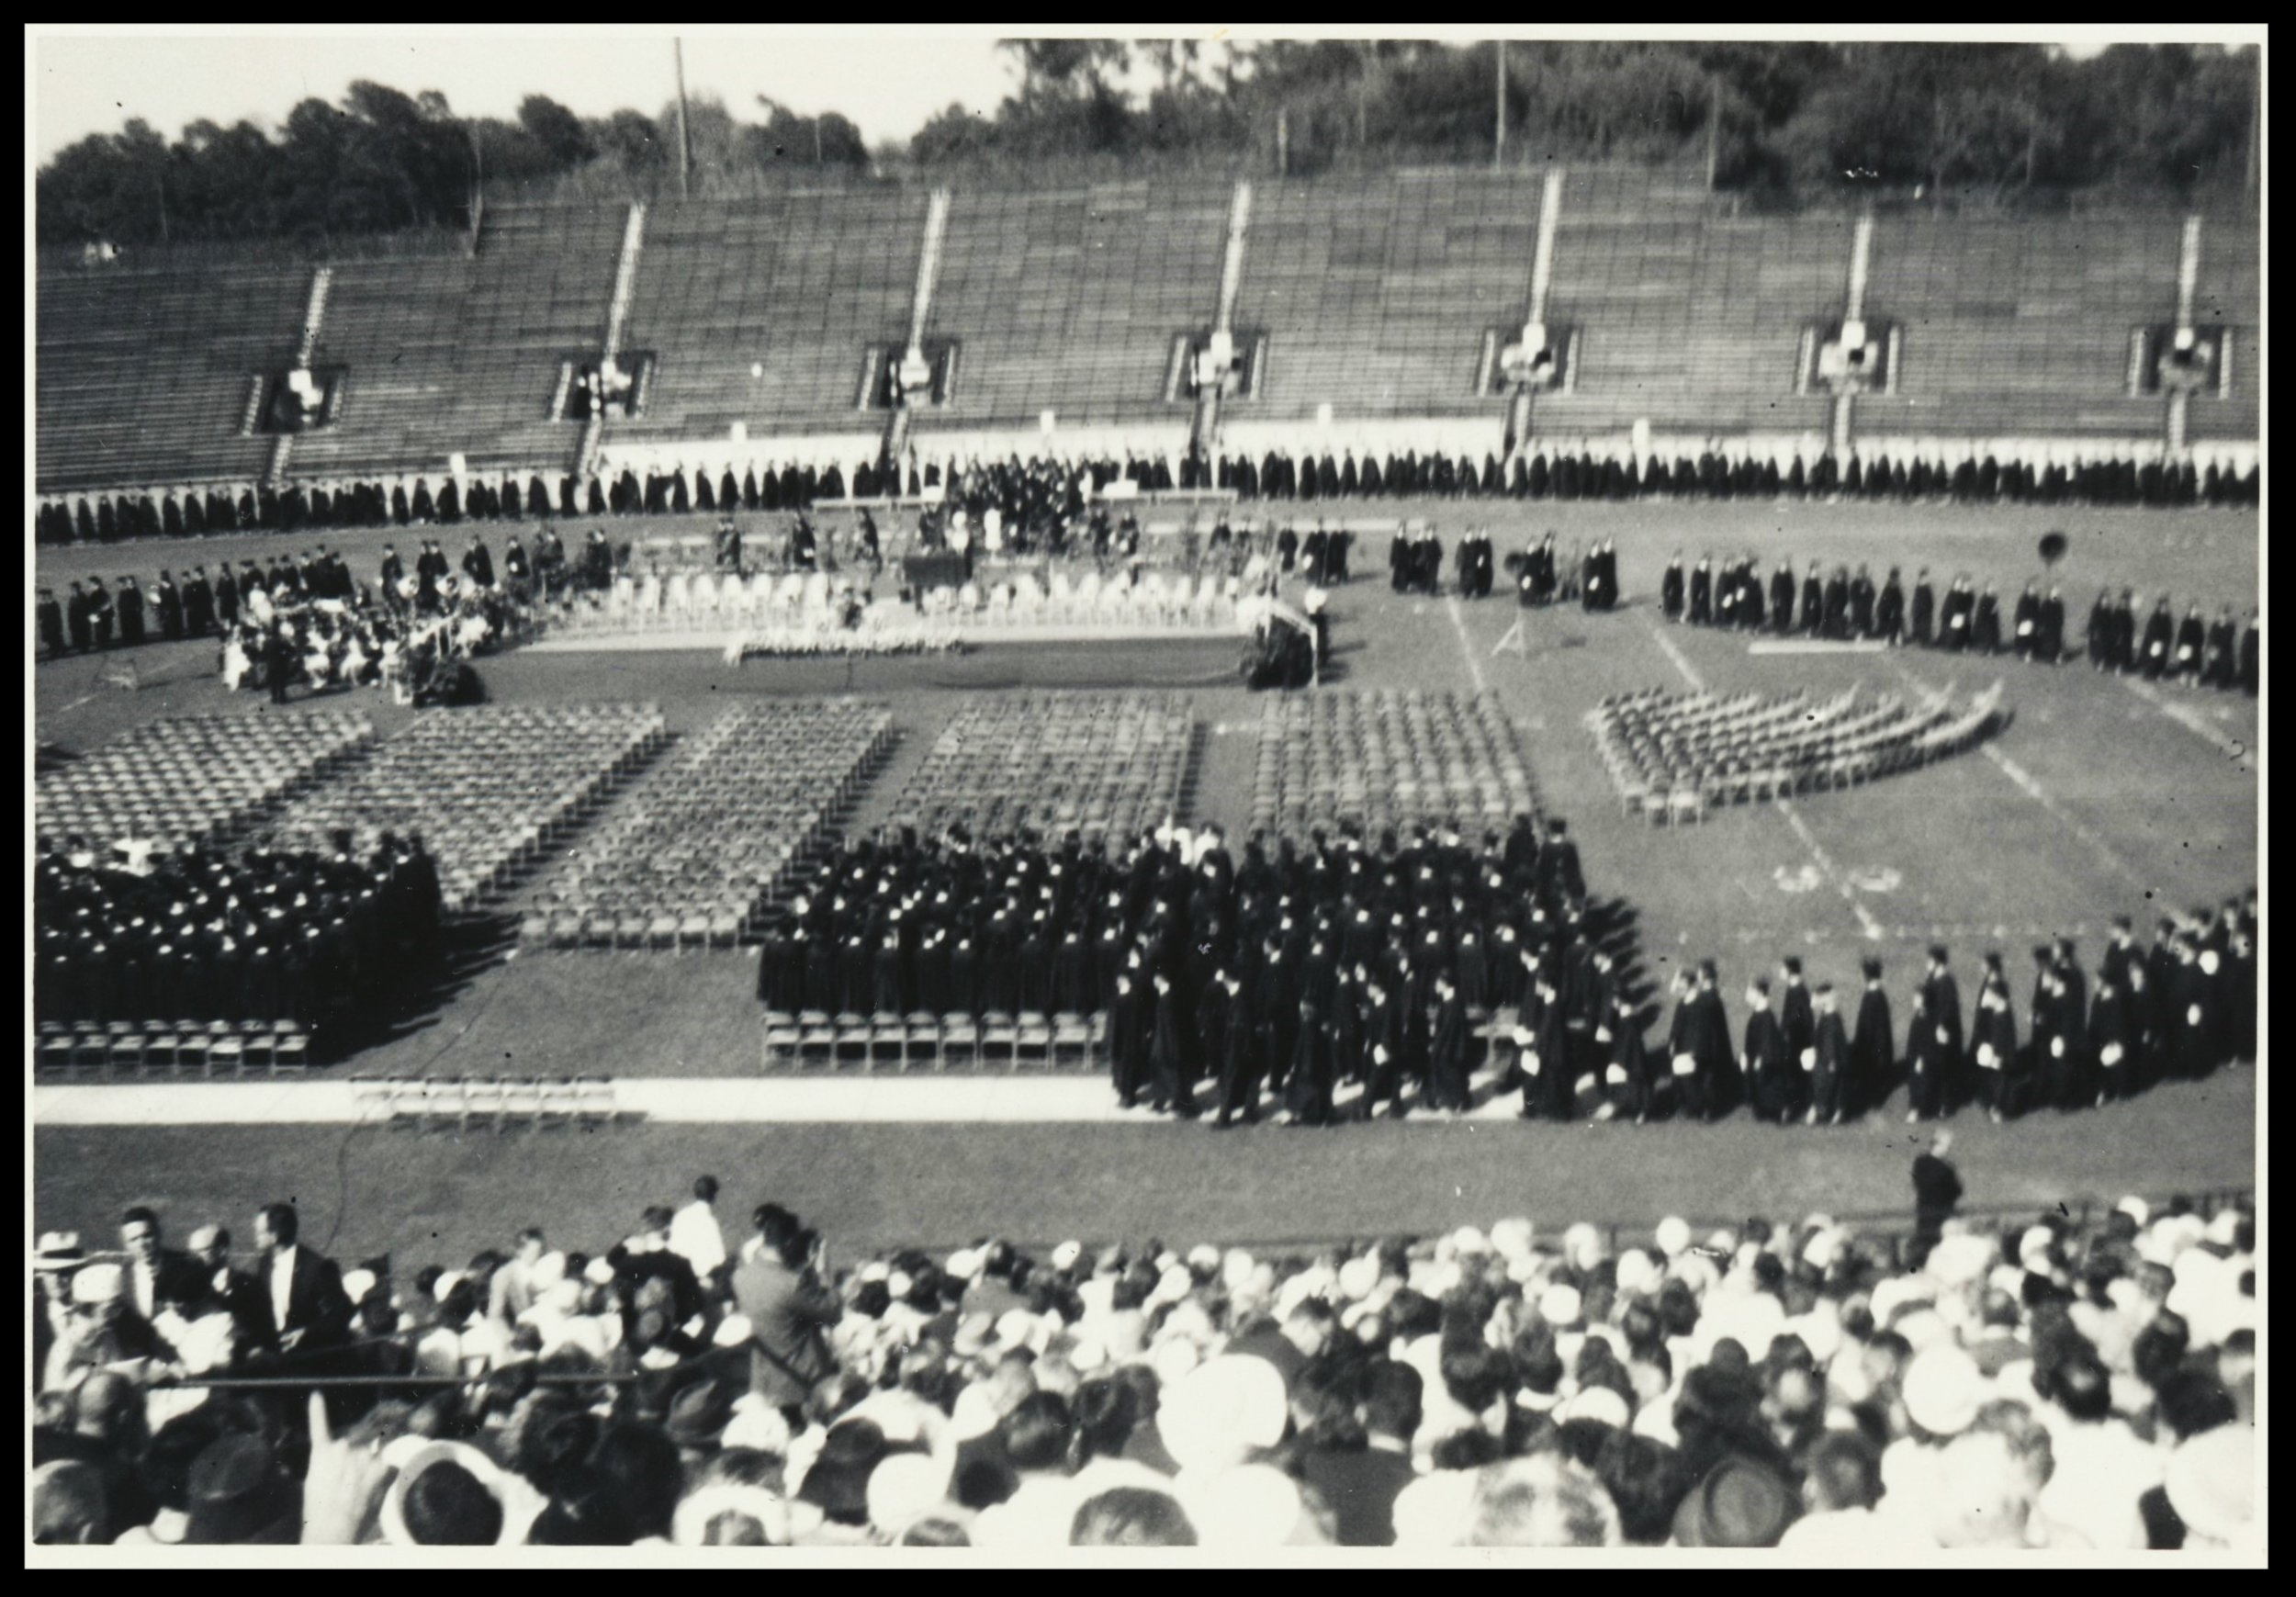 Dr. Young's Graduation Ceremony